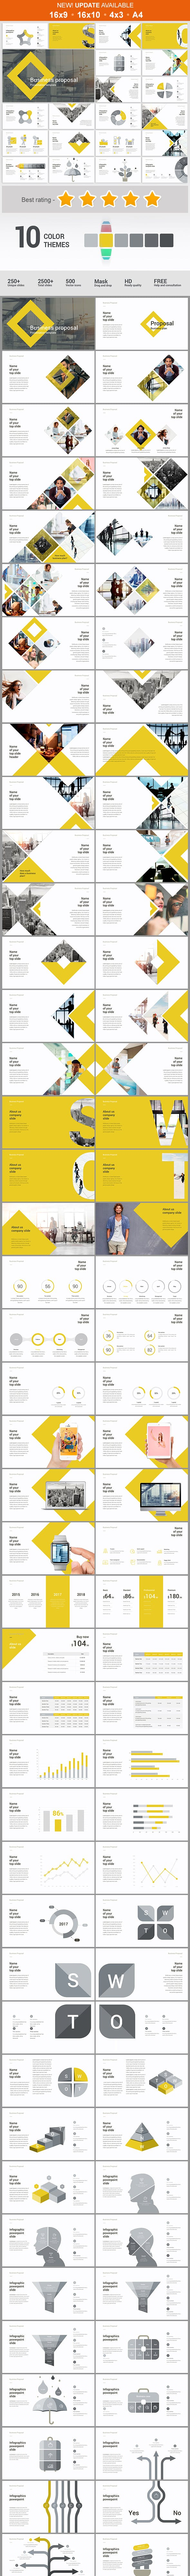 Business Proposal Powerpoint Template By Malis Graphicriver